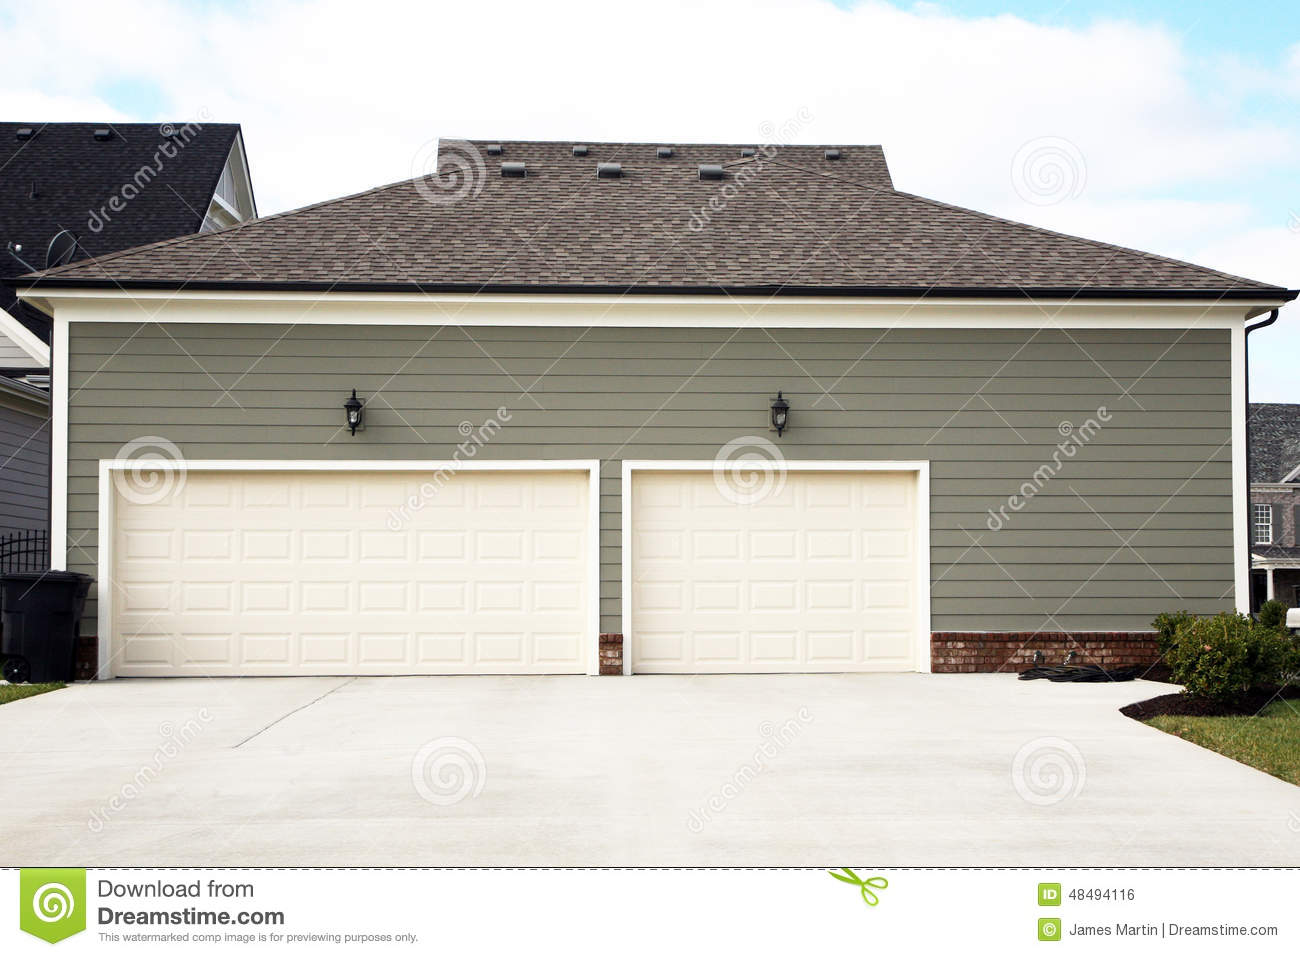 Marvelous house plans with 4 car attached garage 3 for House plans with 4 car attached garage